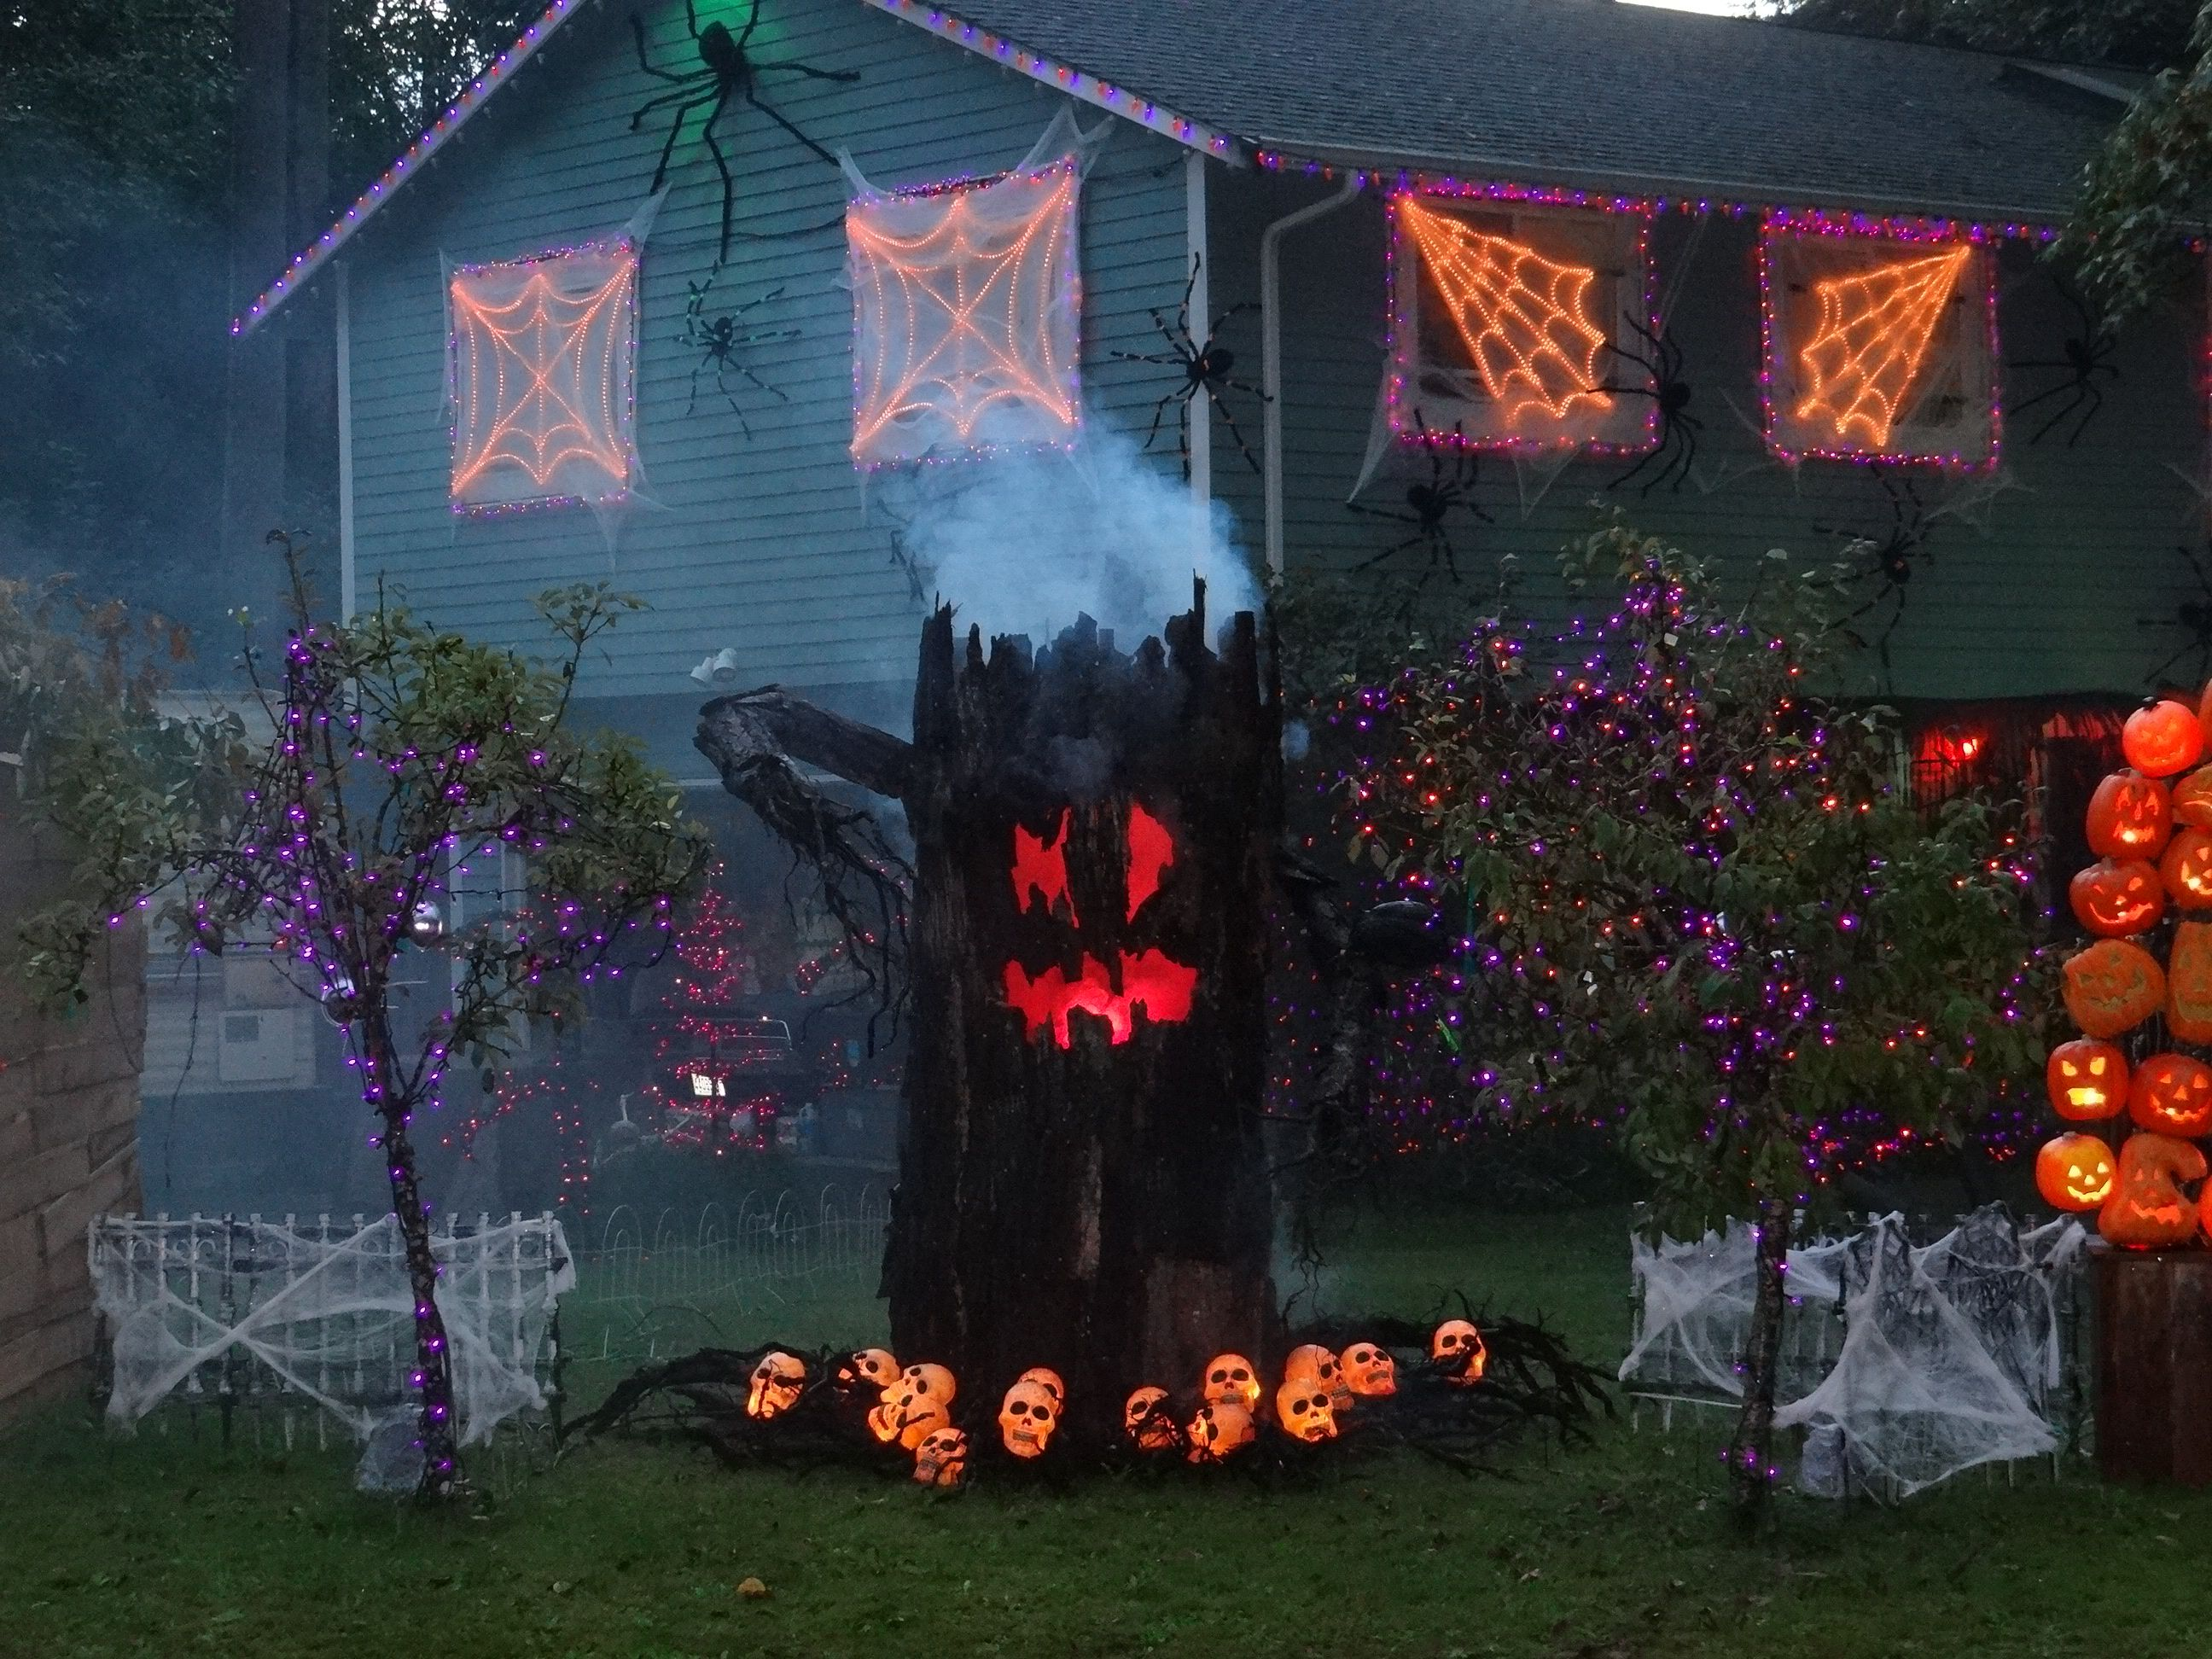 decoration cool decorating halloween outdoor with scary black tree and spyder also pumpkins for halloween outdoor design ideas wonderful halloween outdoor - Scary Outdoor Halloween Decorations Diy